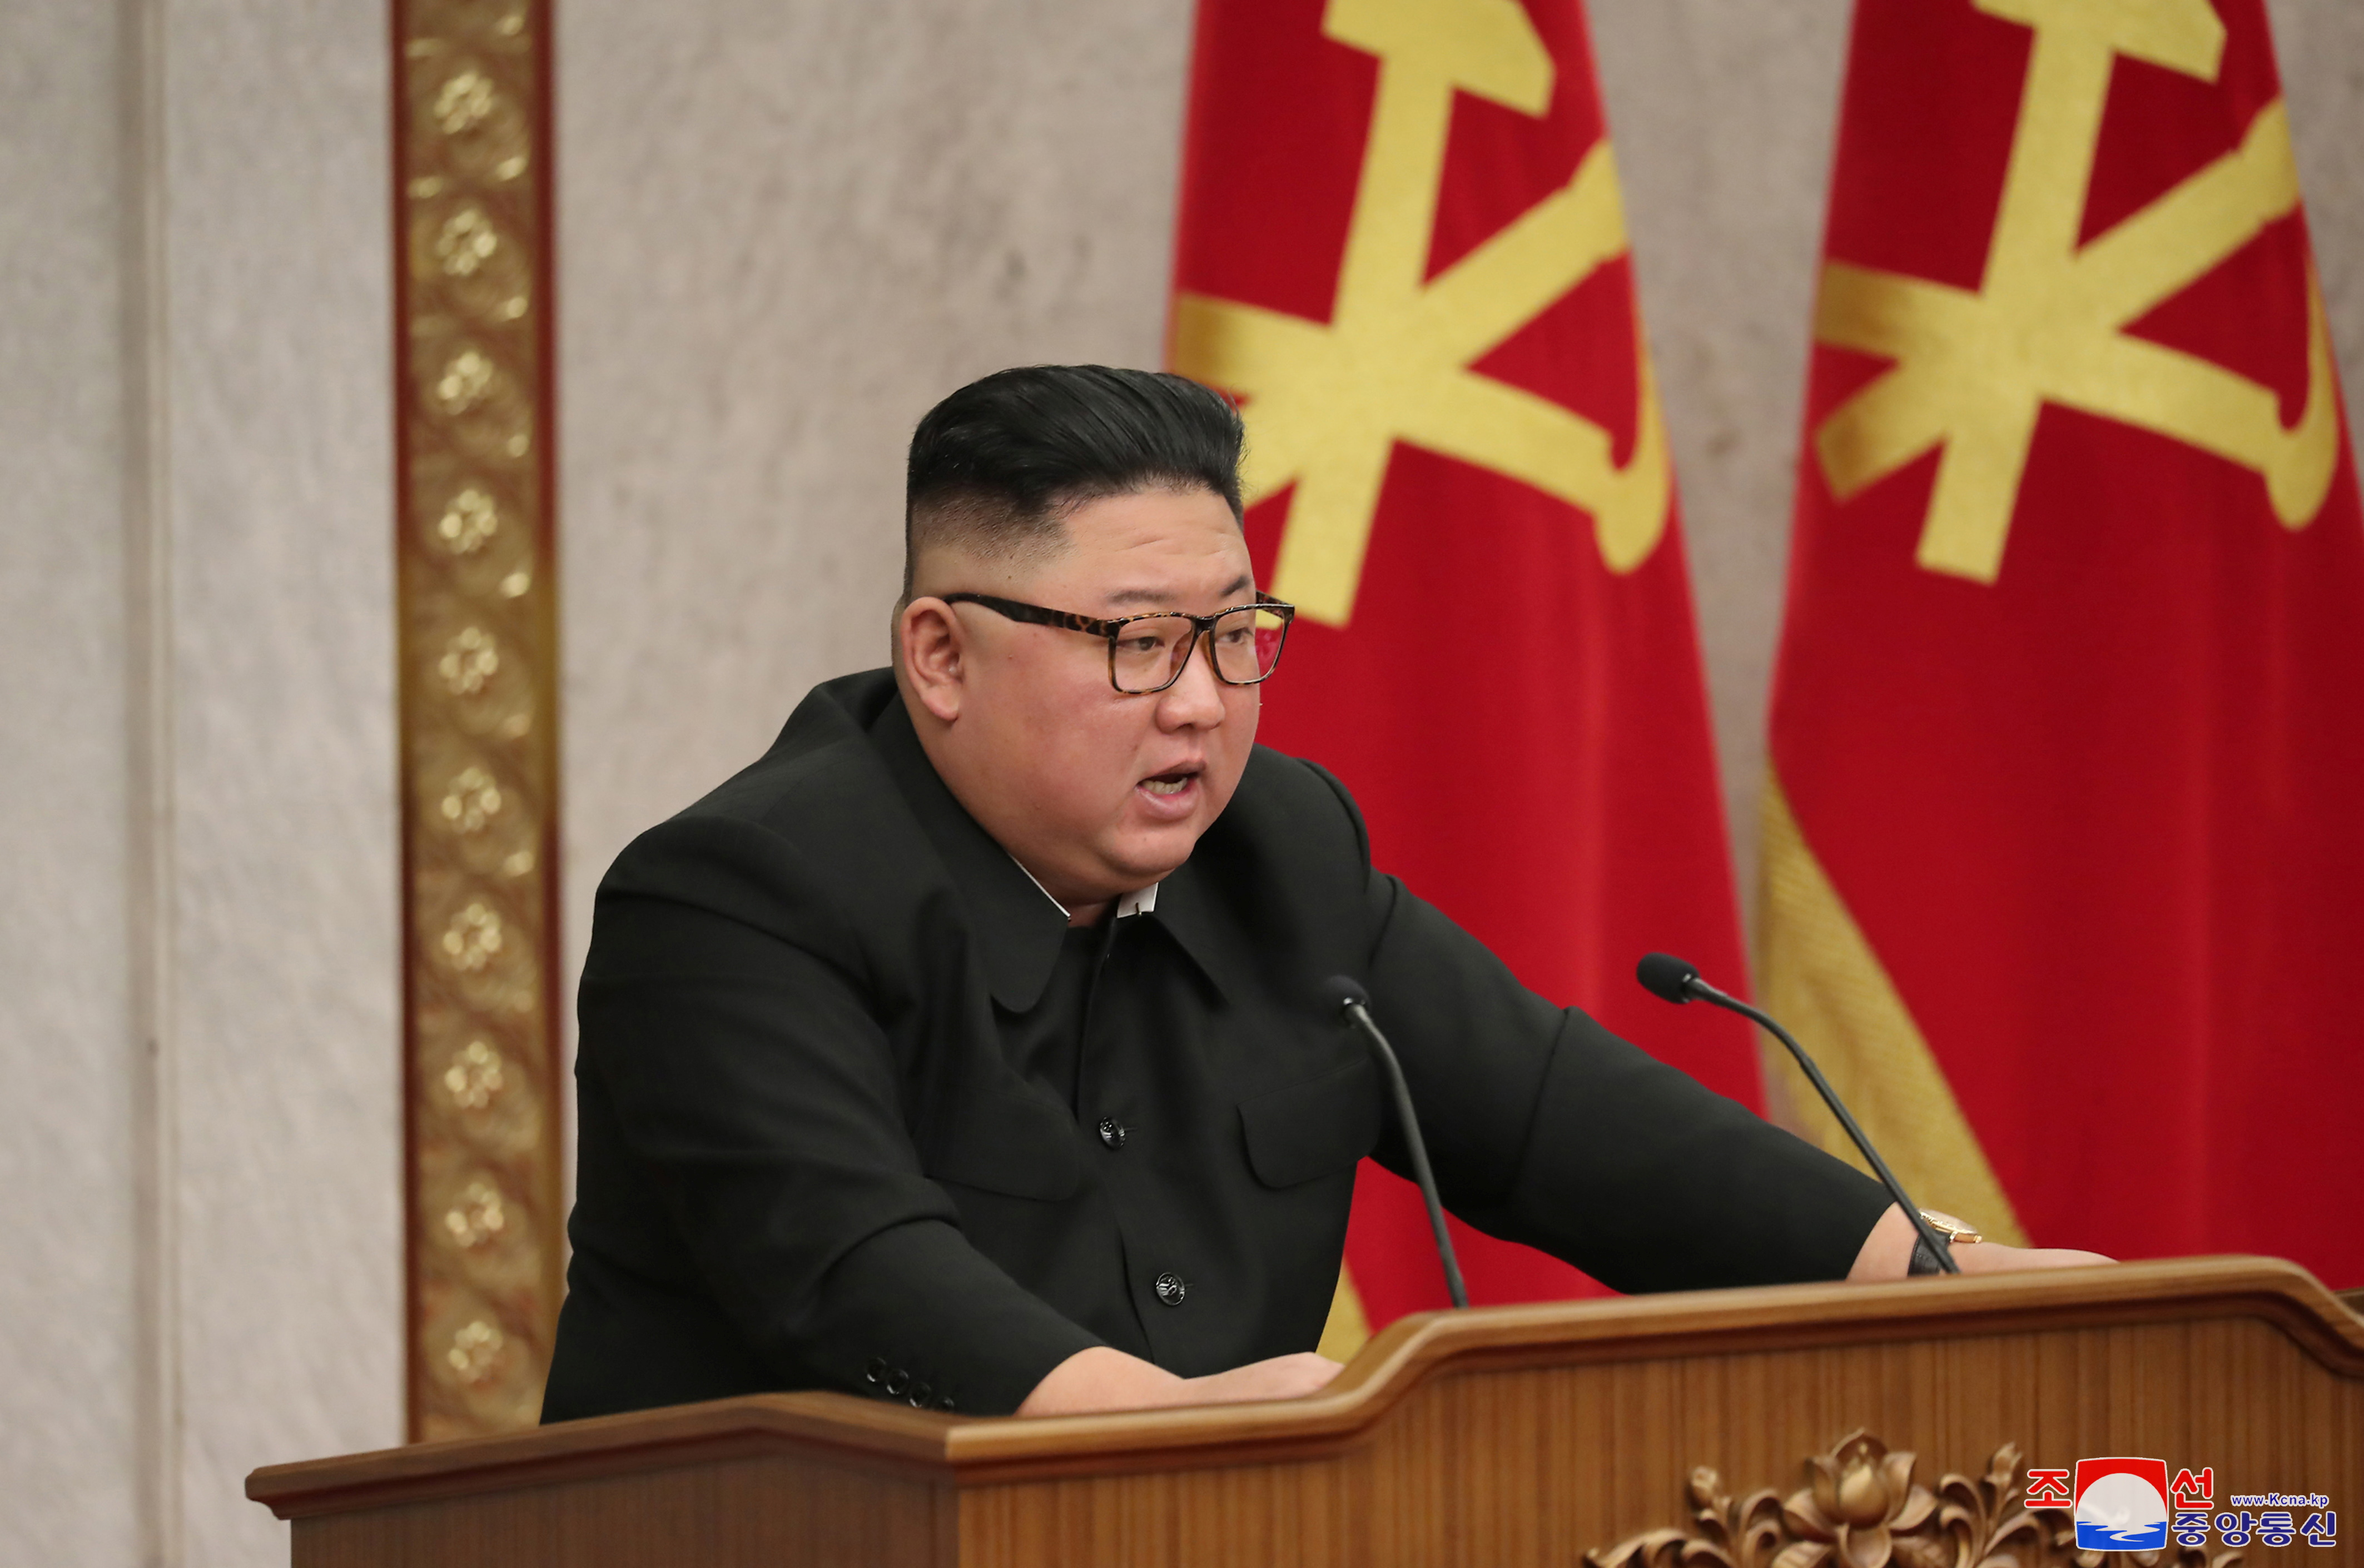 North Korean leader Kim Jong Un attends a plenary meeting of the Workers' Party central committee in Pyongyang, North Korea in this photo supplied by North Korea's Central News Agency (KCNA) on February 10, 2021.    KCNA via REUTERS